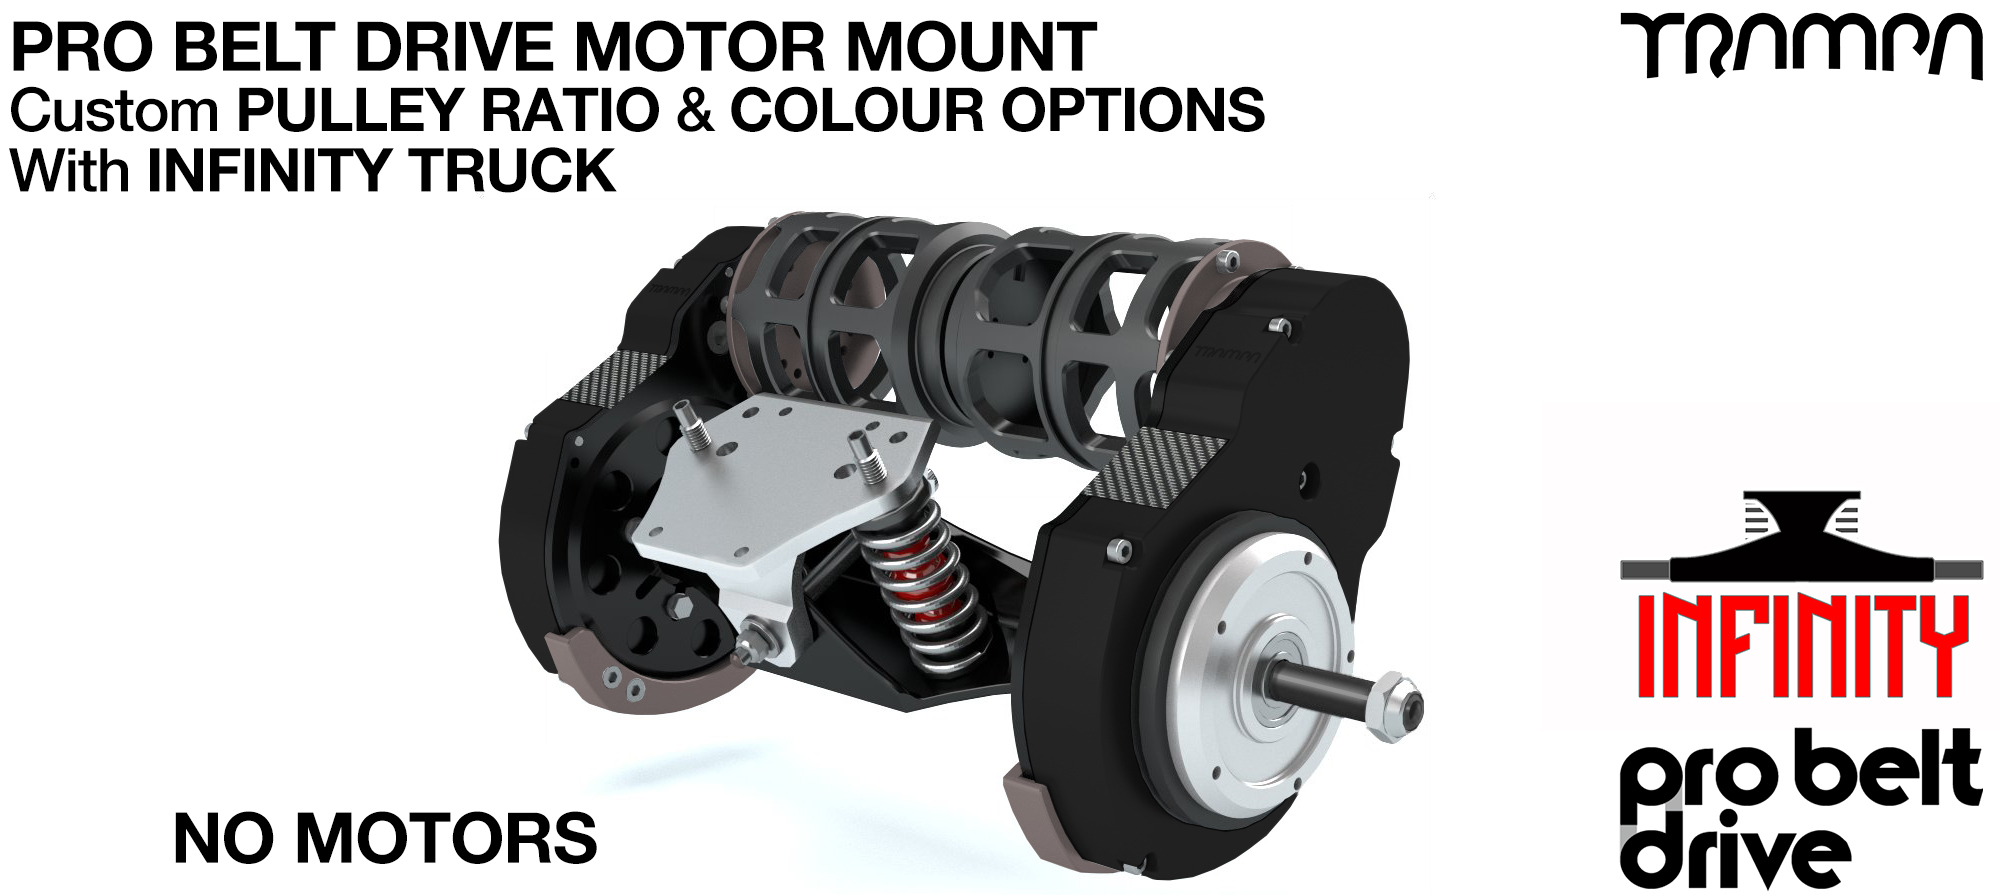 Mountainboard PRO Belt Drive TWIN Motor Mounts, Motors & Precision INFINITY TRUCK